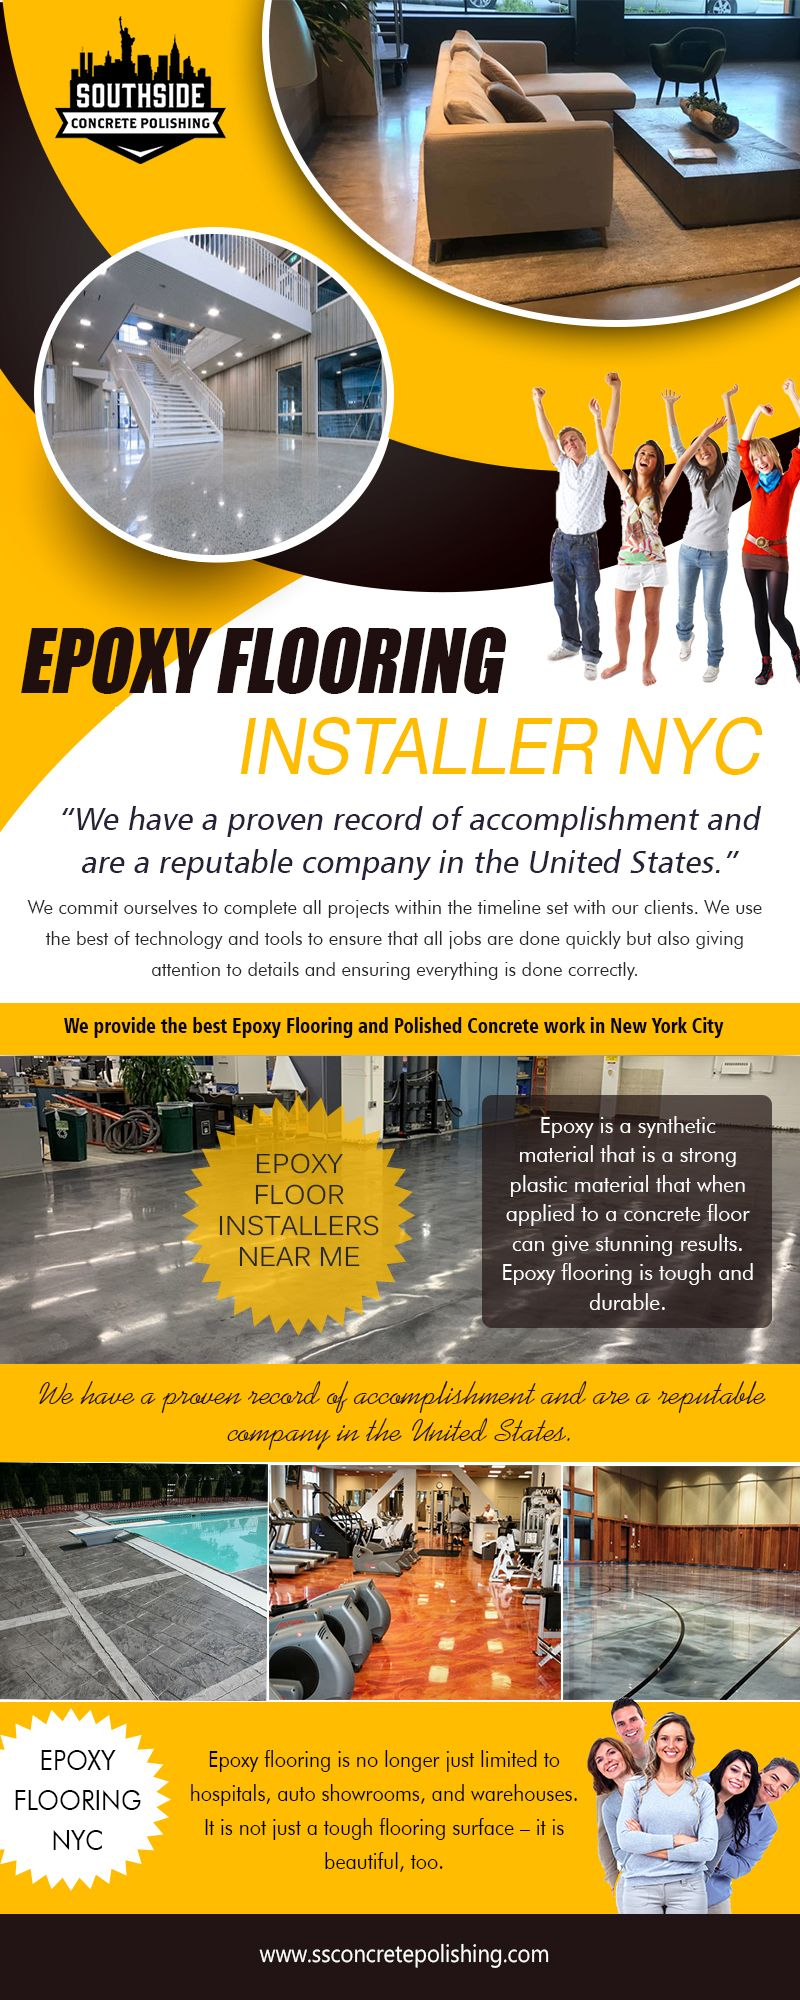 Flooring specialists who are members of professional